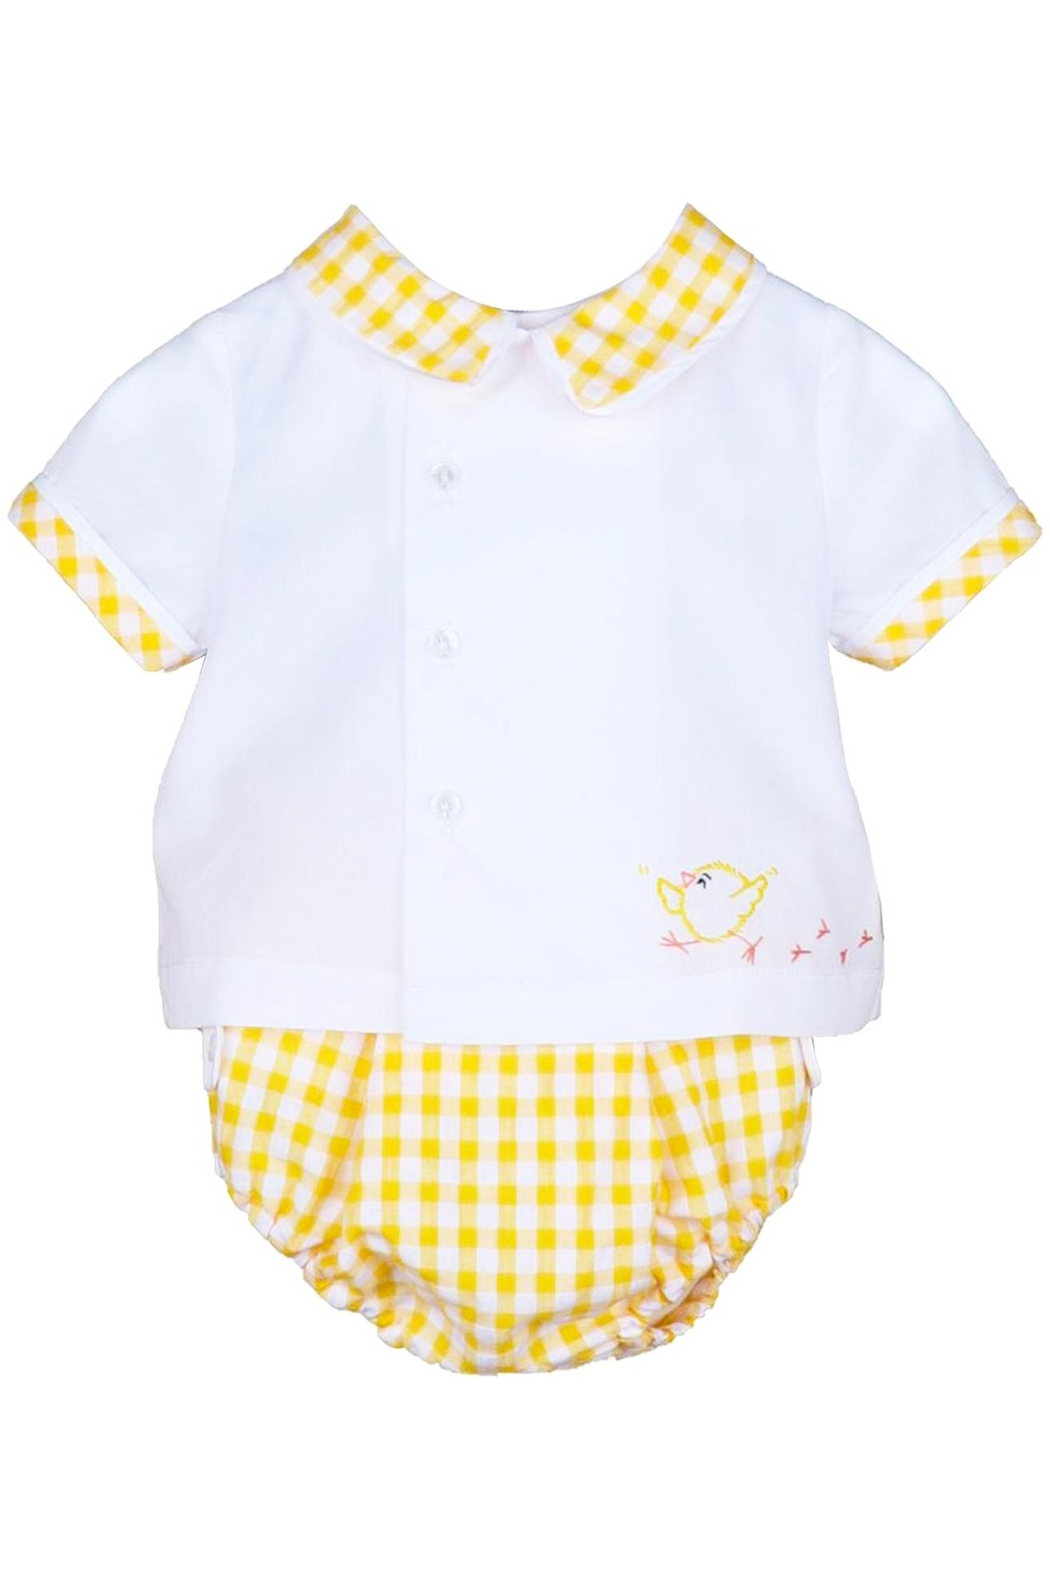 Sophie & Lucas Sunny-Chicks Yellow-Gingham Two-Piece-Set - Front Full Image